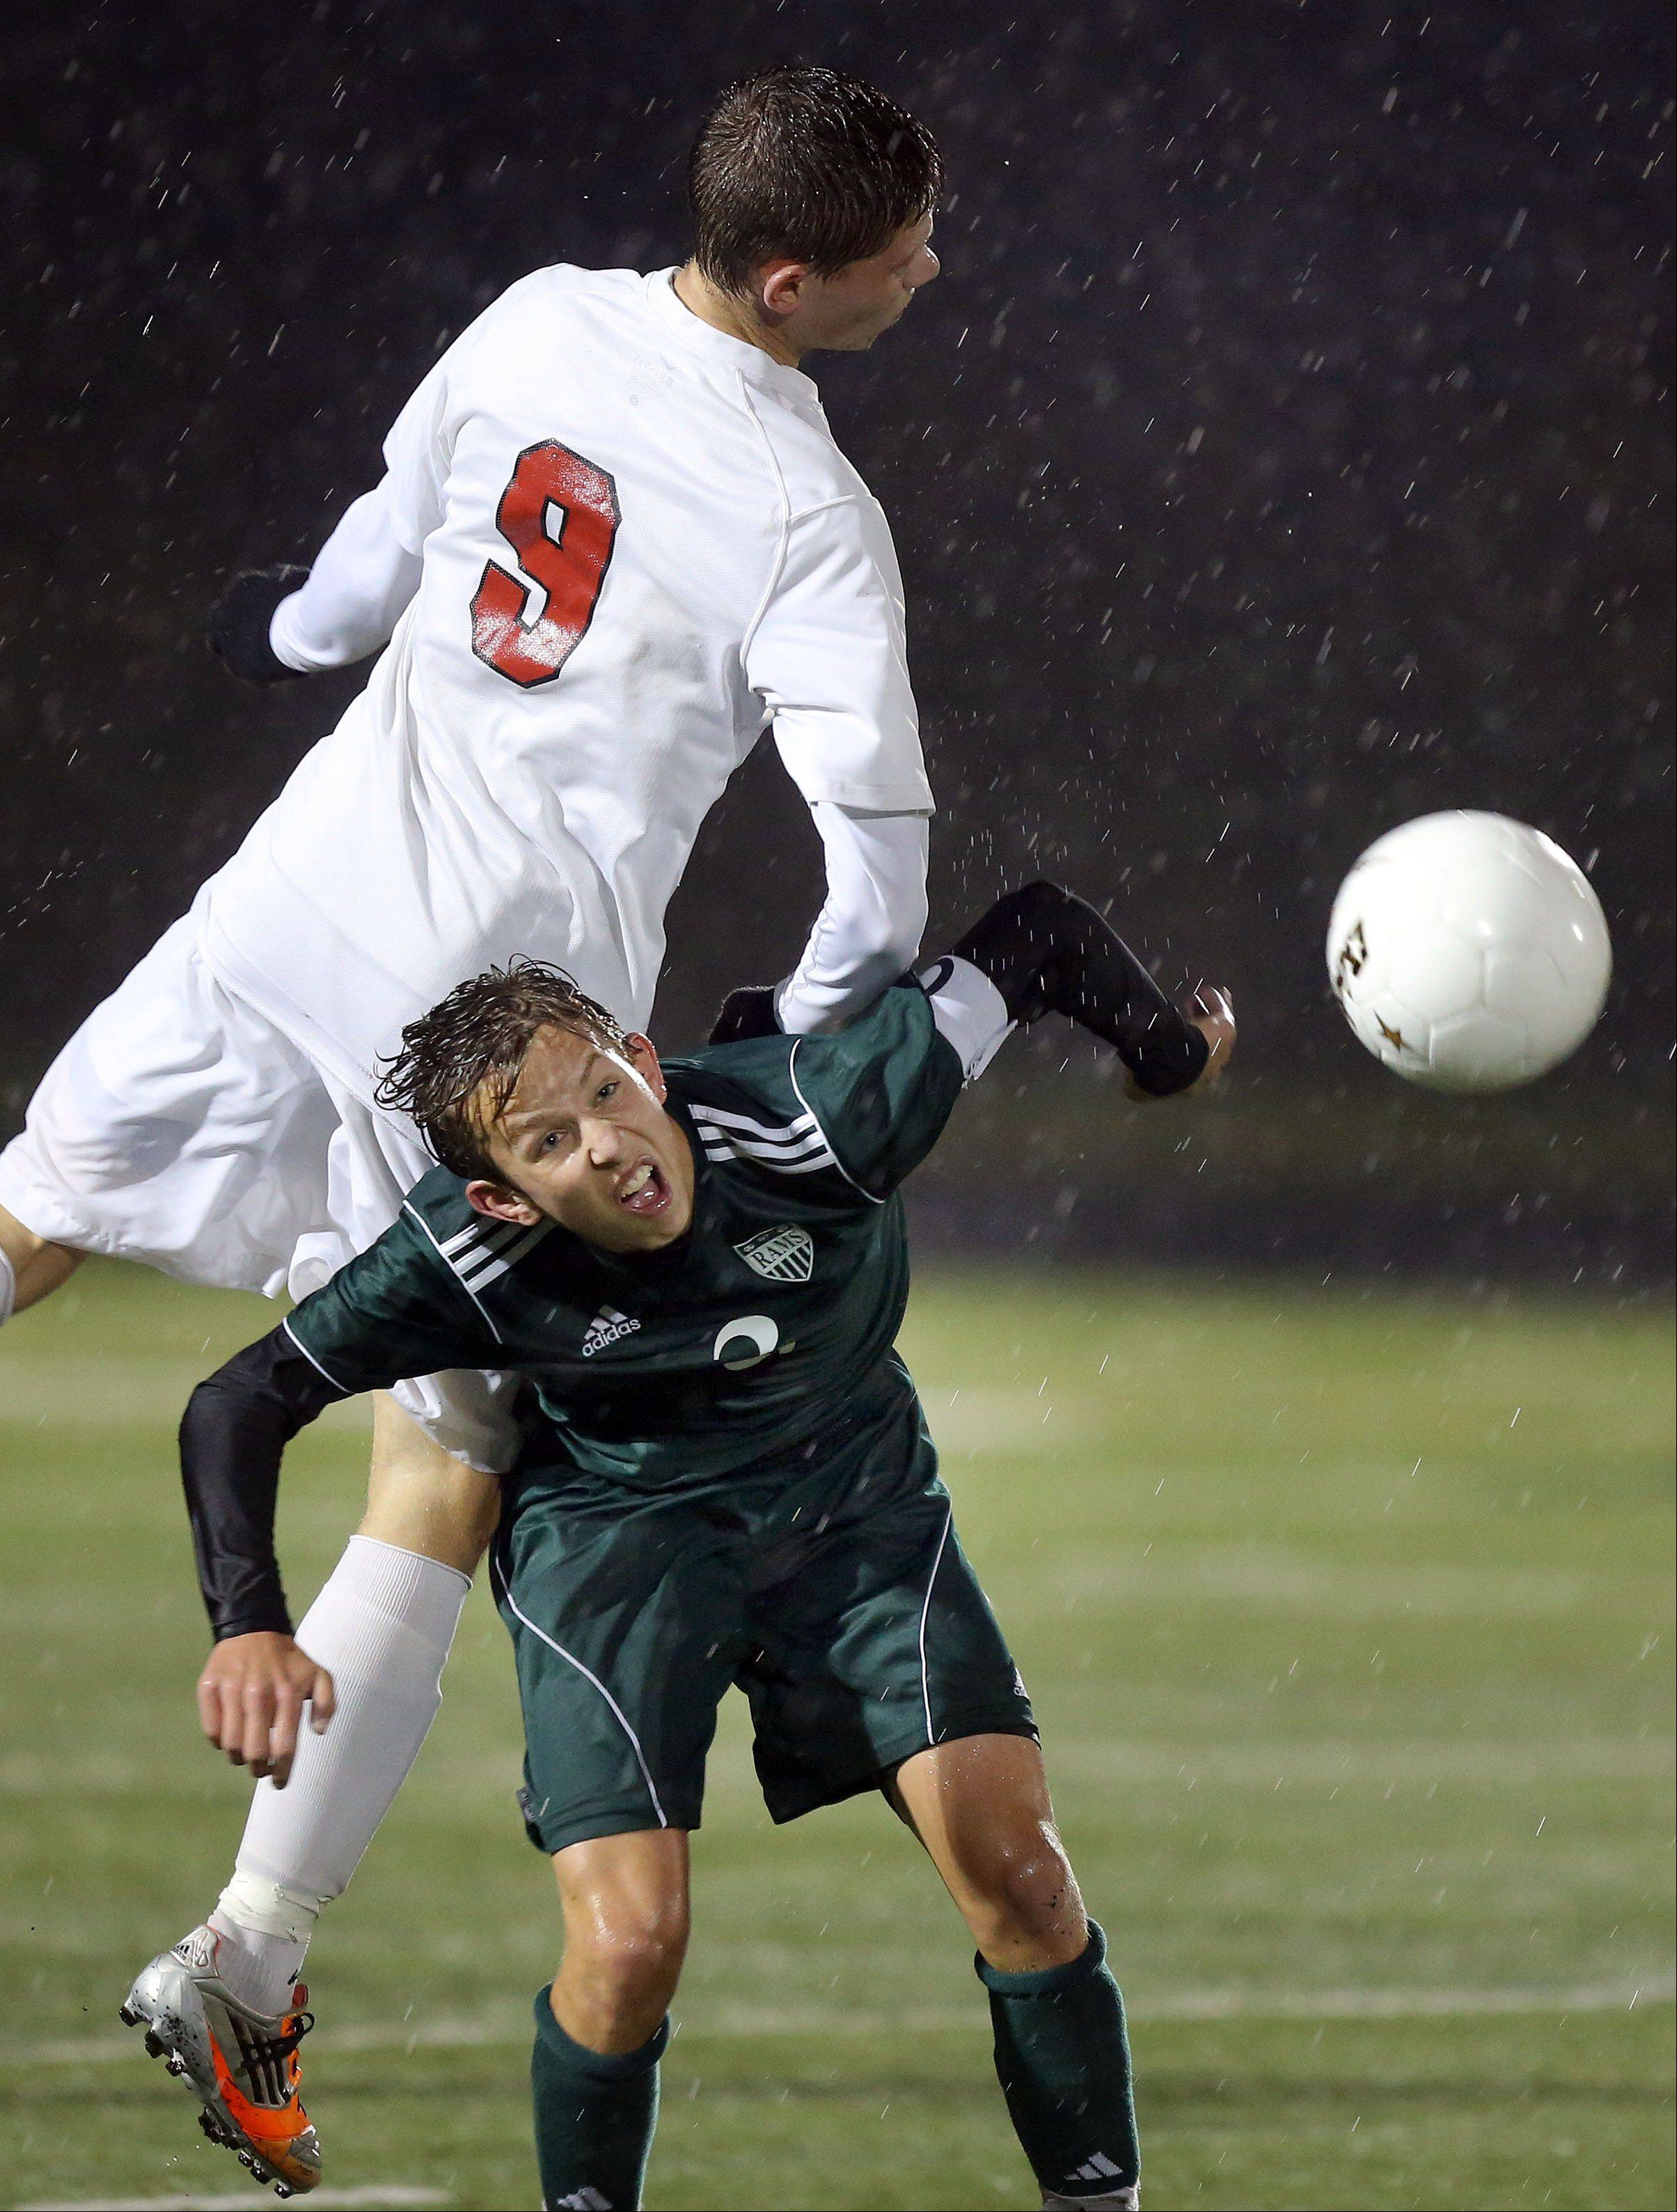 Antioch's Krystian Streit, left, and Grayslake Central's Isaac Longenecker go up for a header during the Class 3A sectional semifinal Wednesday at Grayslake North High School.